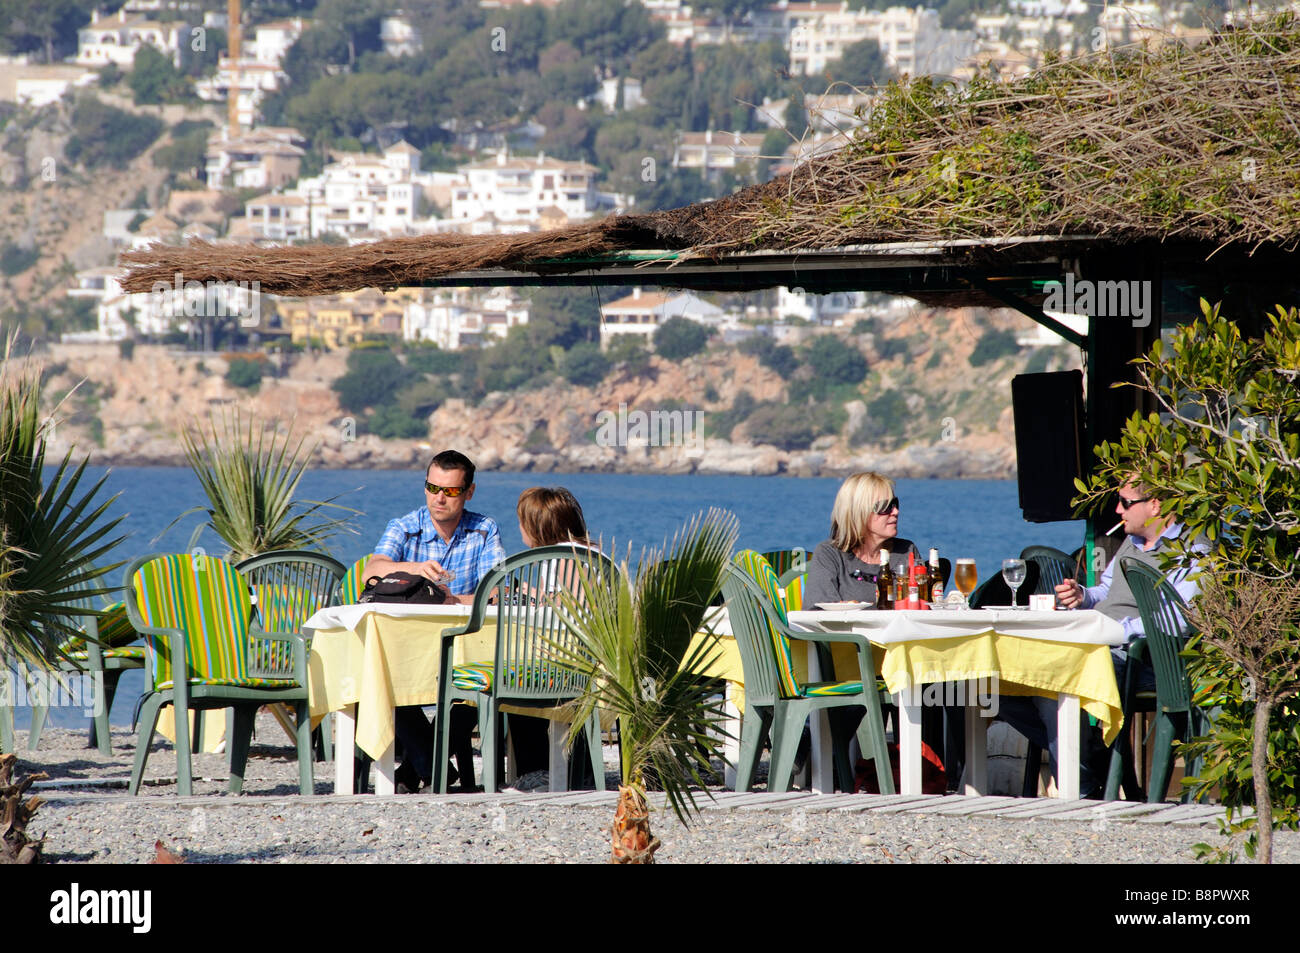 Beach Cafe Bar And Customers At La Herradura On The Costa Tropical Stock Photo Alamy